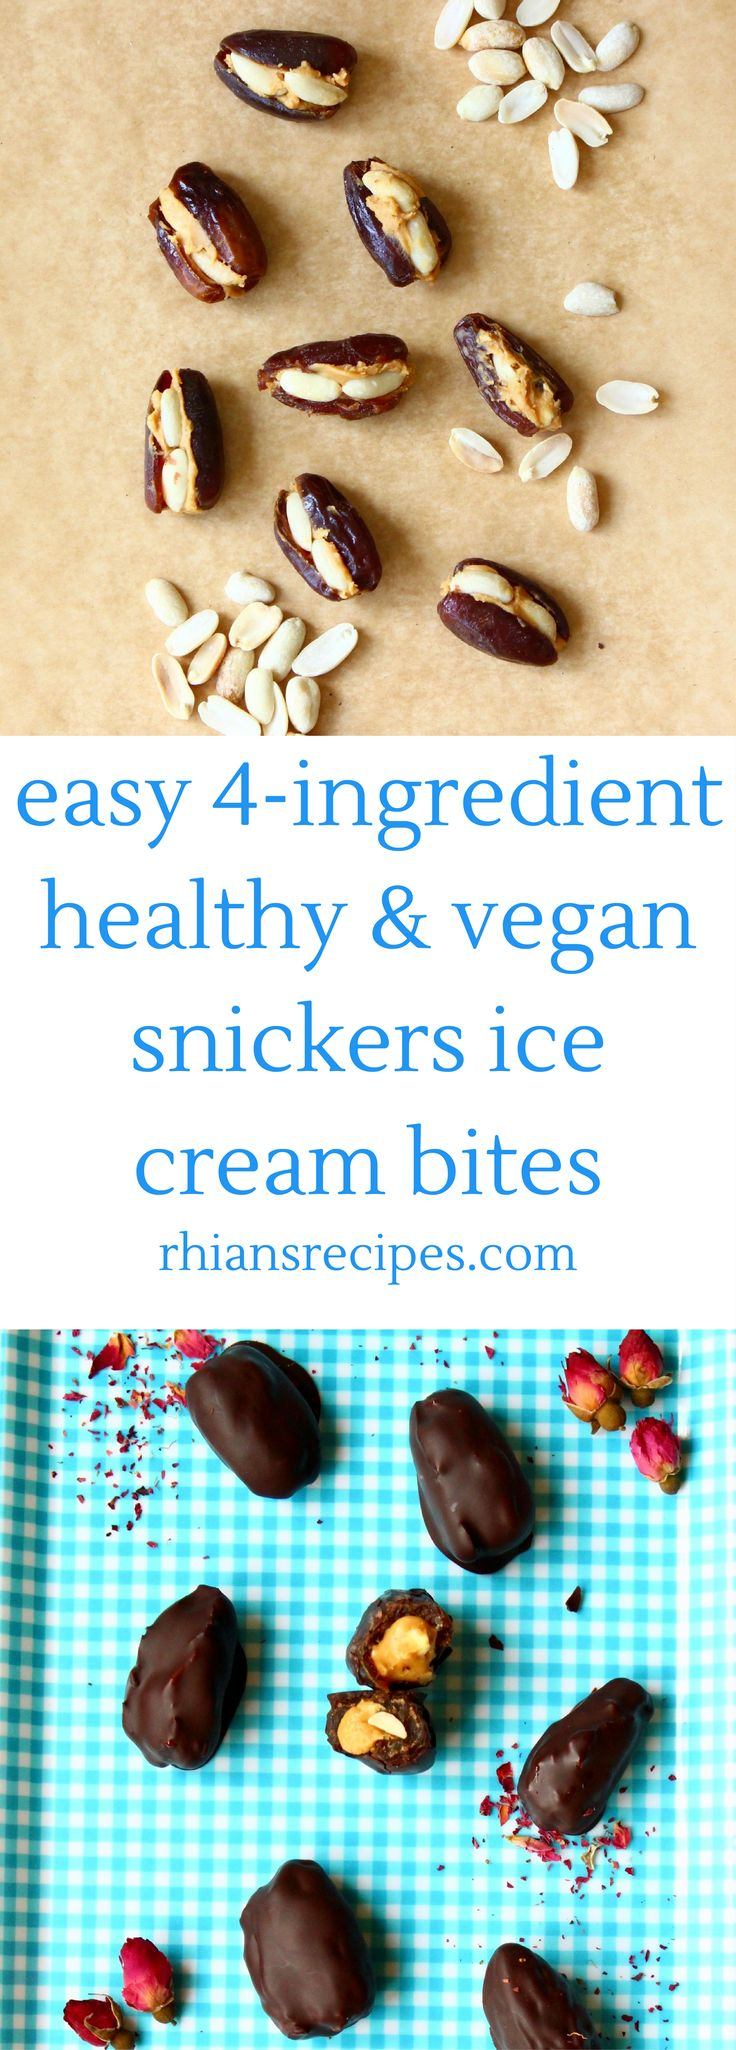 These 4-ingredient Healthy Snickers Ice Cream Bites are highly shareable, insanely moreish and taste deceptively rich and indulgent. They're also vegan and unbelievably quick and easy to make.